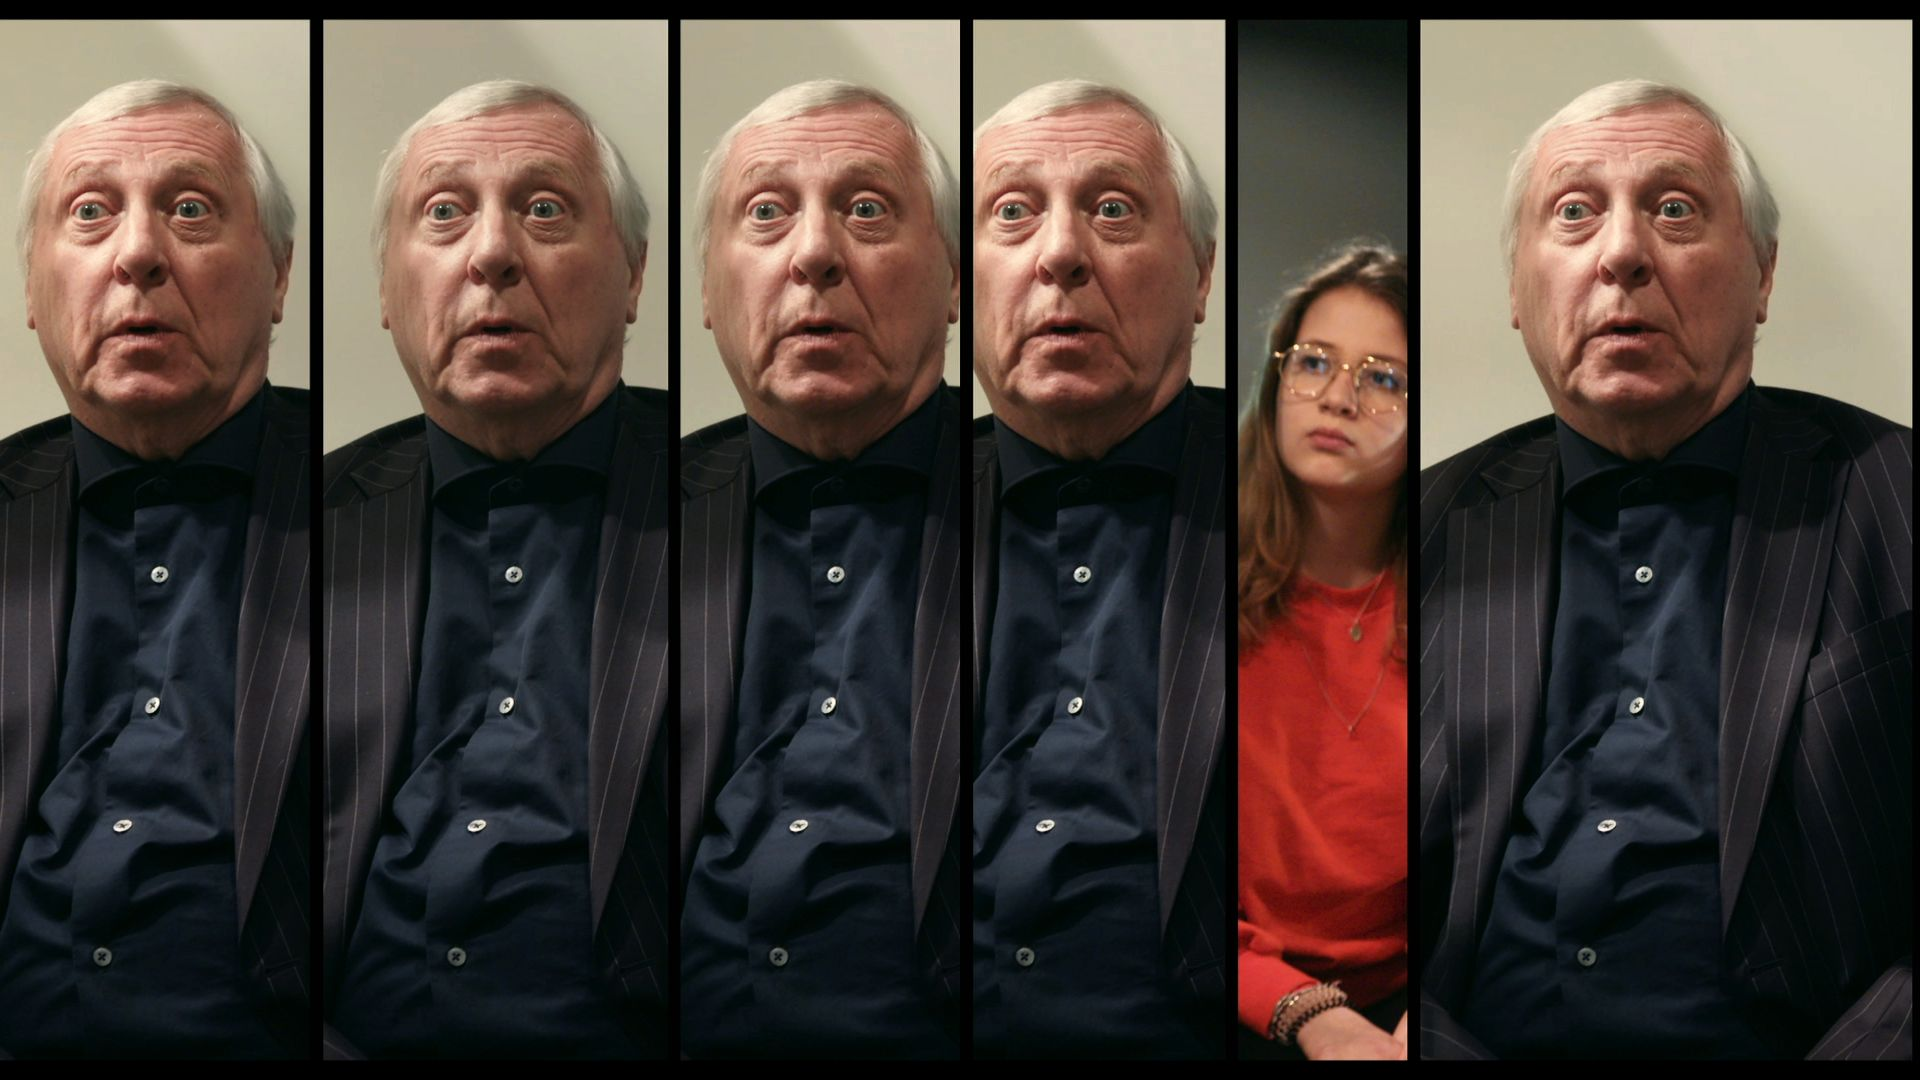 L'alfabeto di Peter Greenaway: un'immagine del documentario